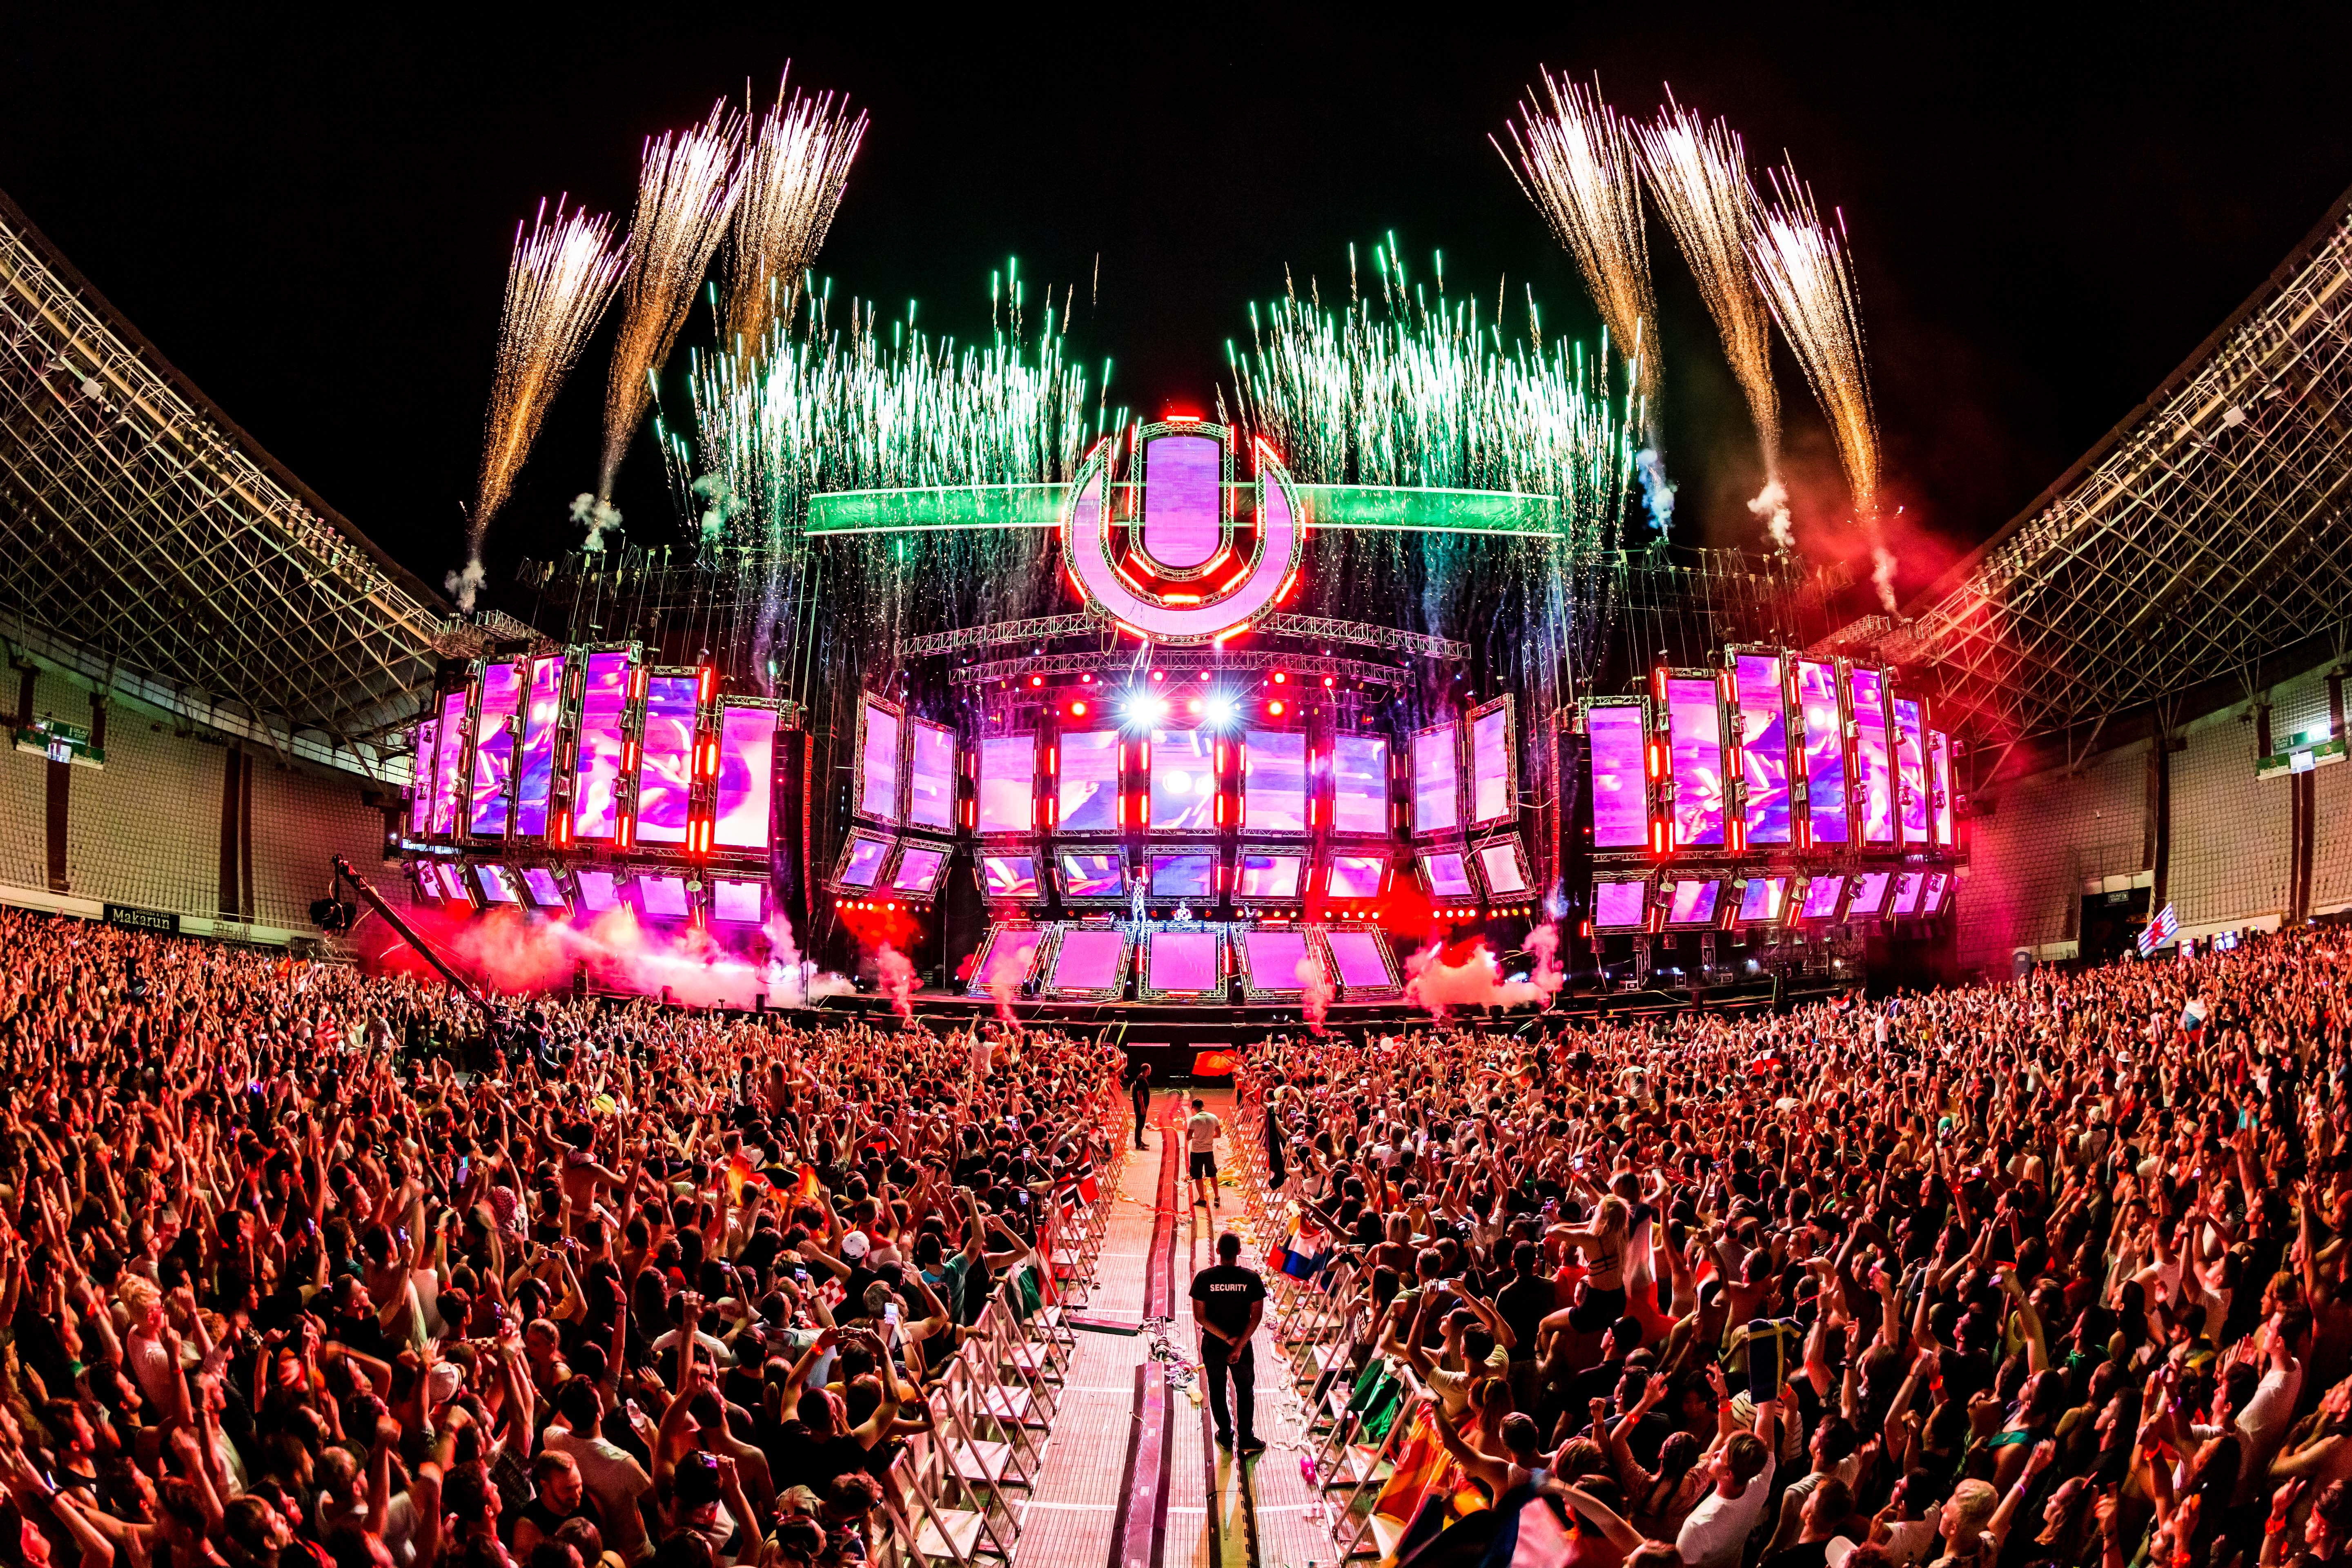 ultra_europe_photo_by_edmkevin2.jpg